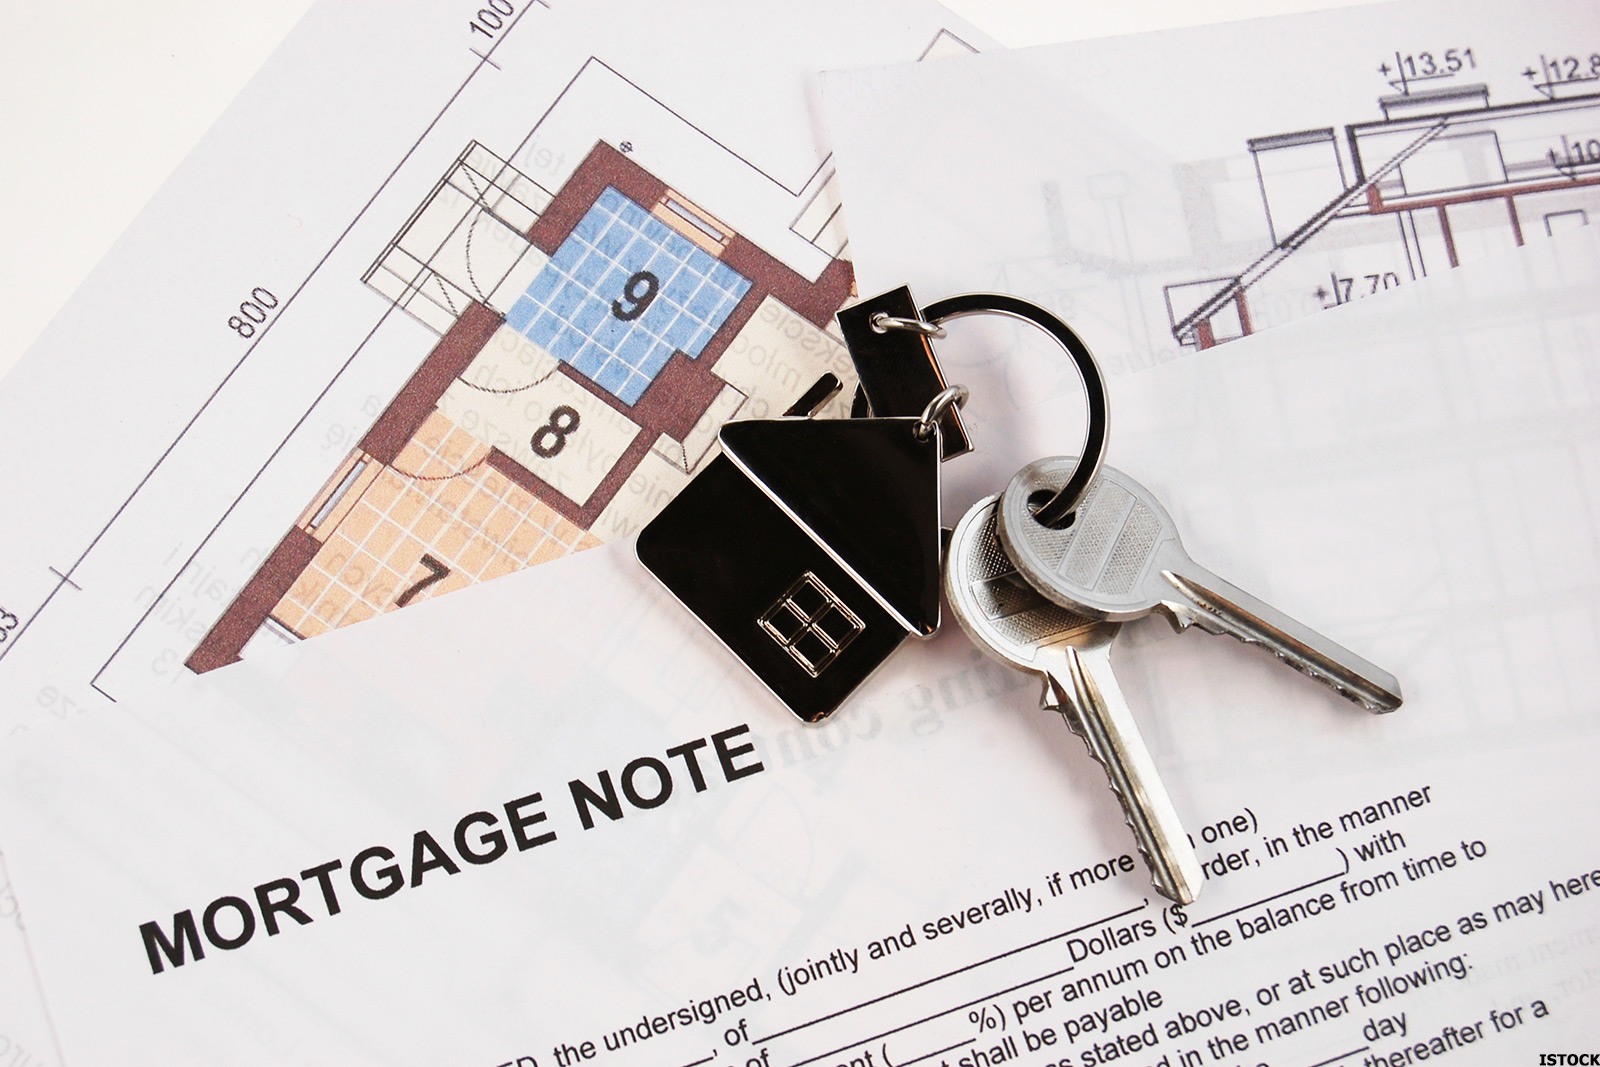 new mortgage rule requires disclosure documents to help